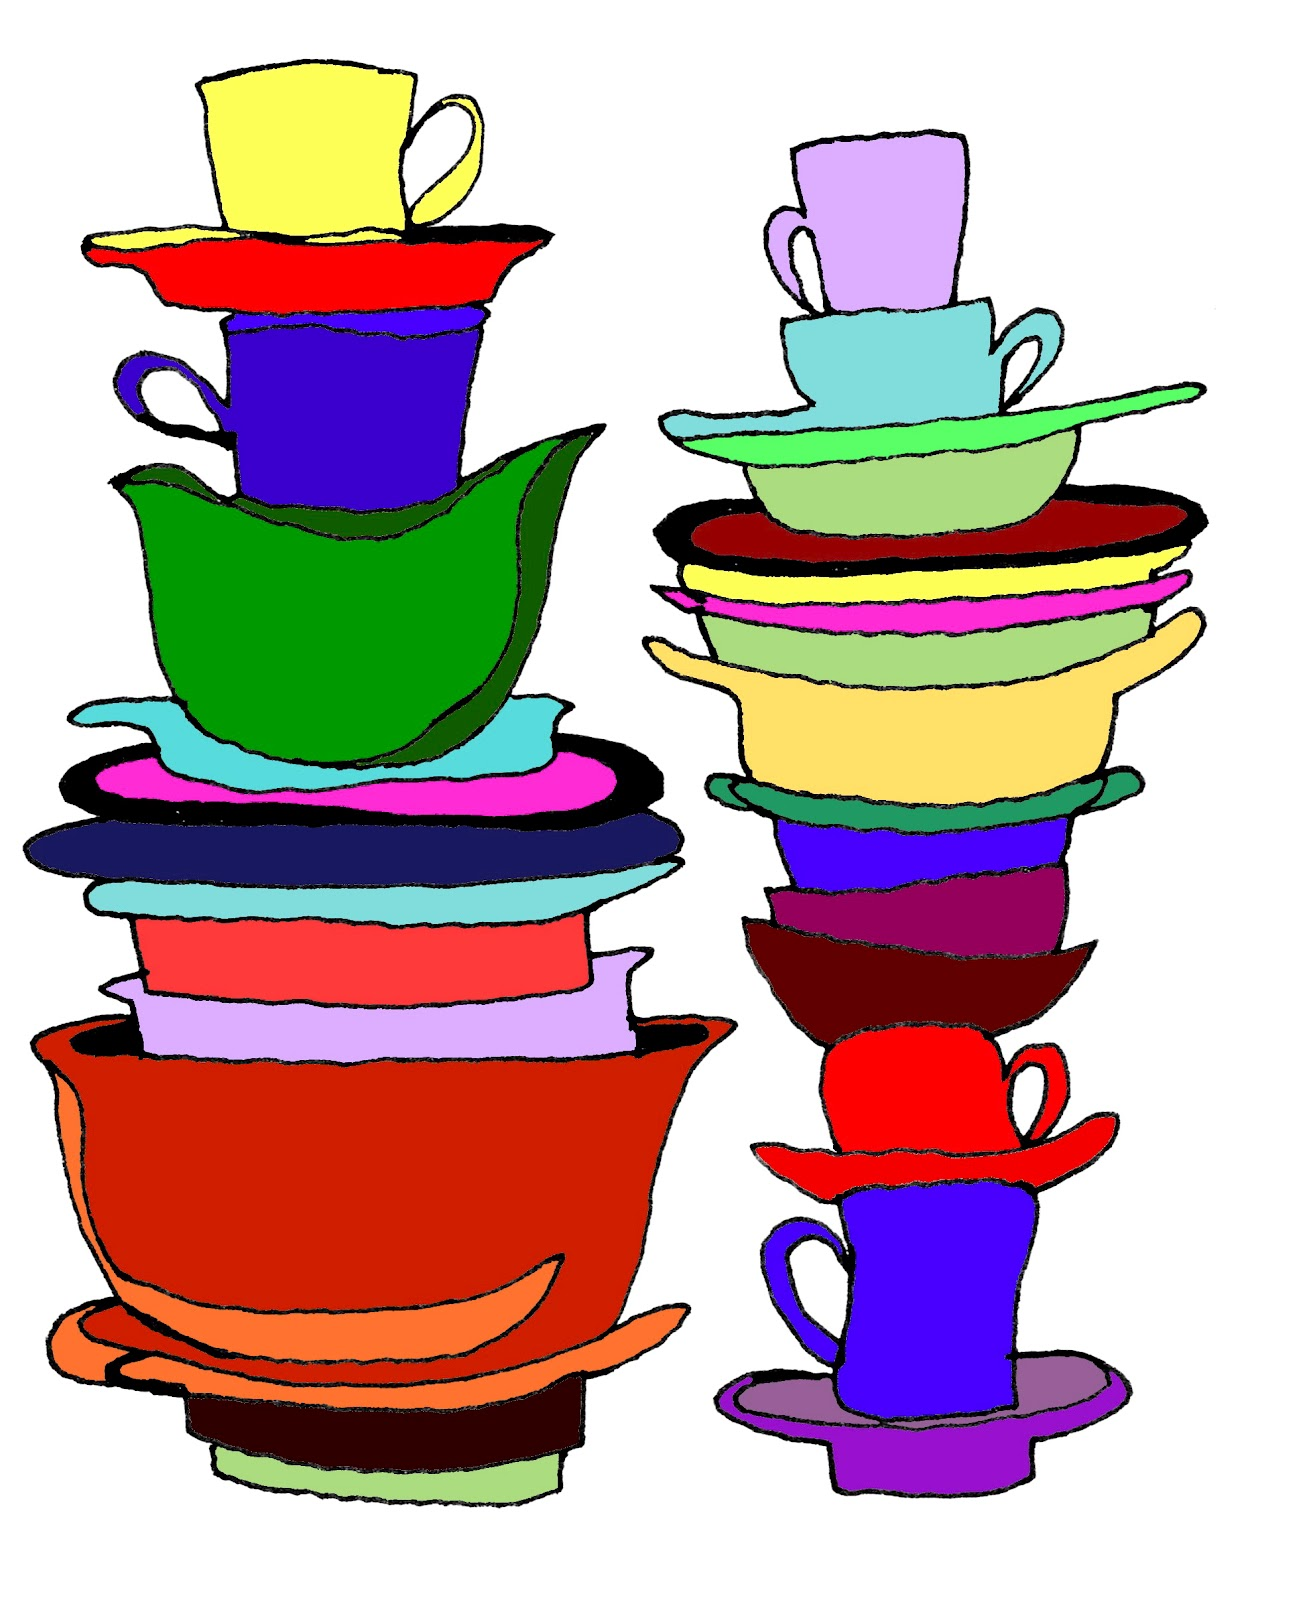 Watch more like Stack Of Bowls Clip Art